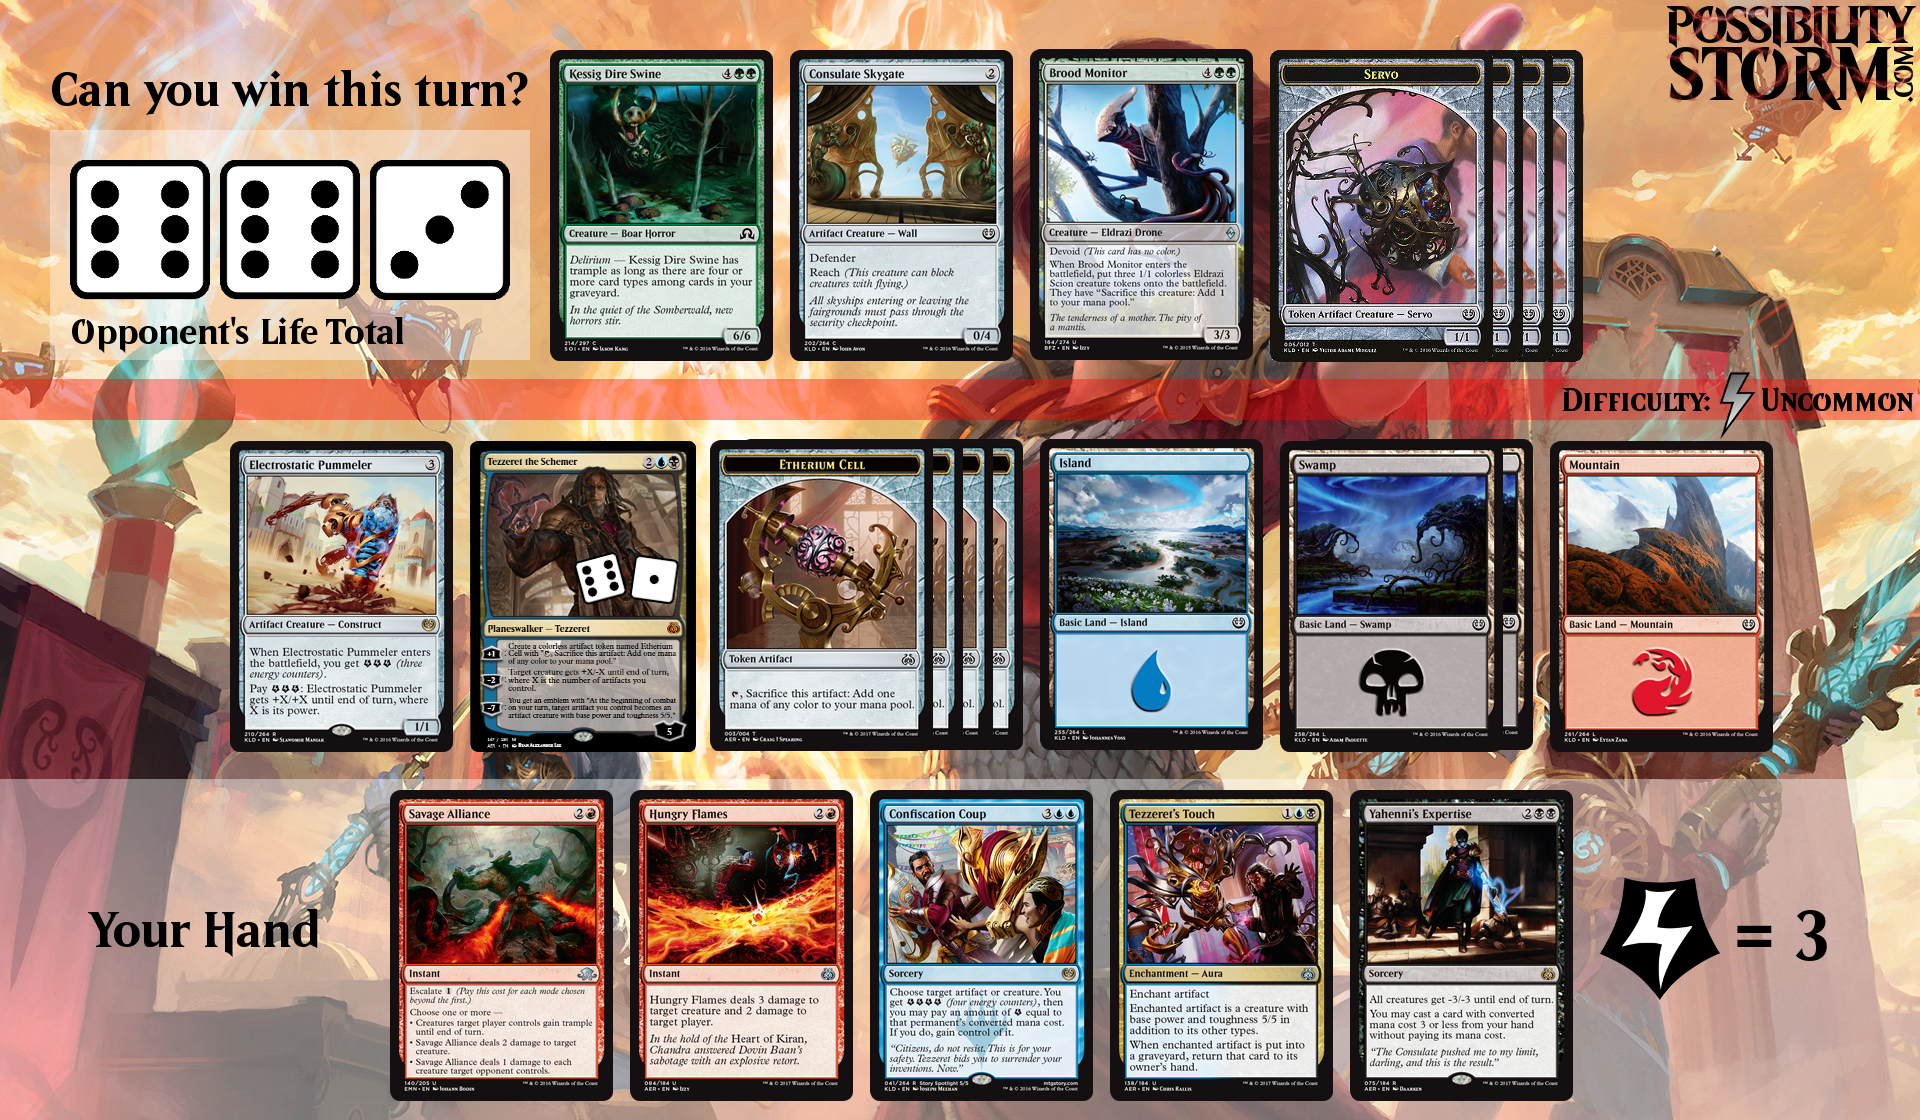 Possiblity Storm - Aether Revolt Puzzle #2